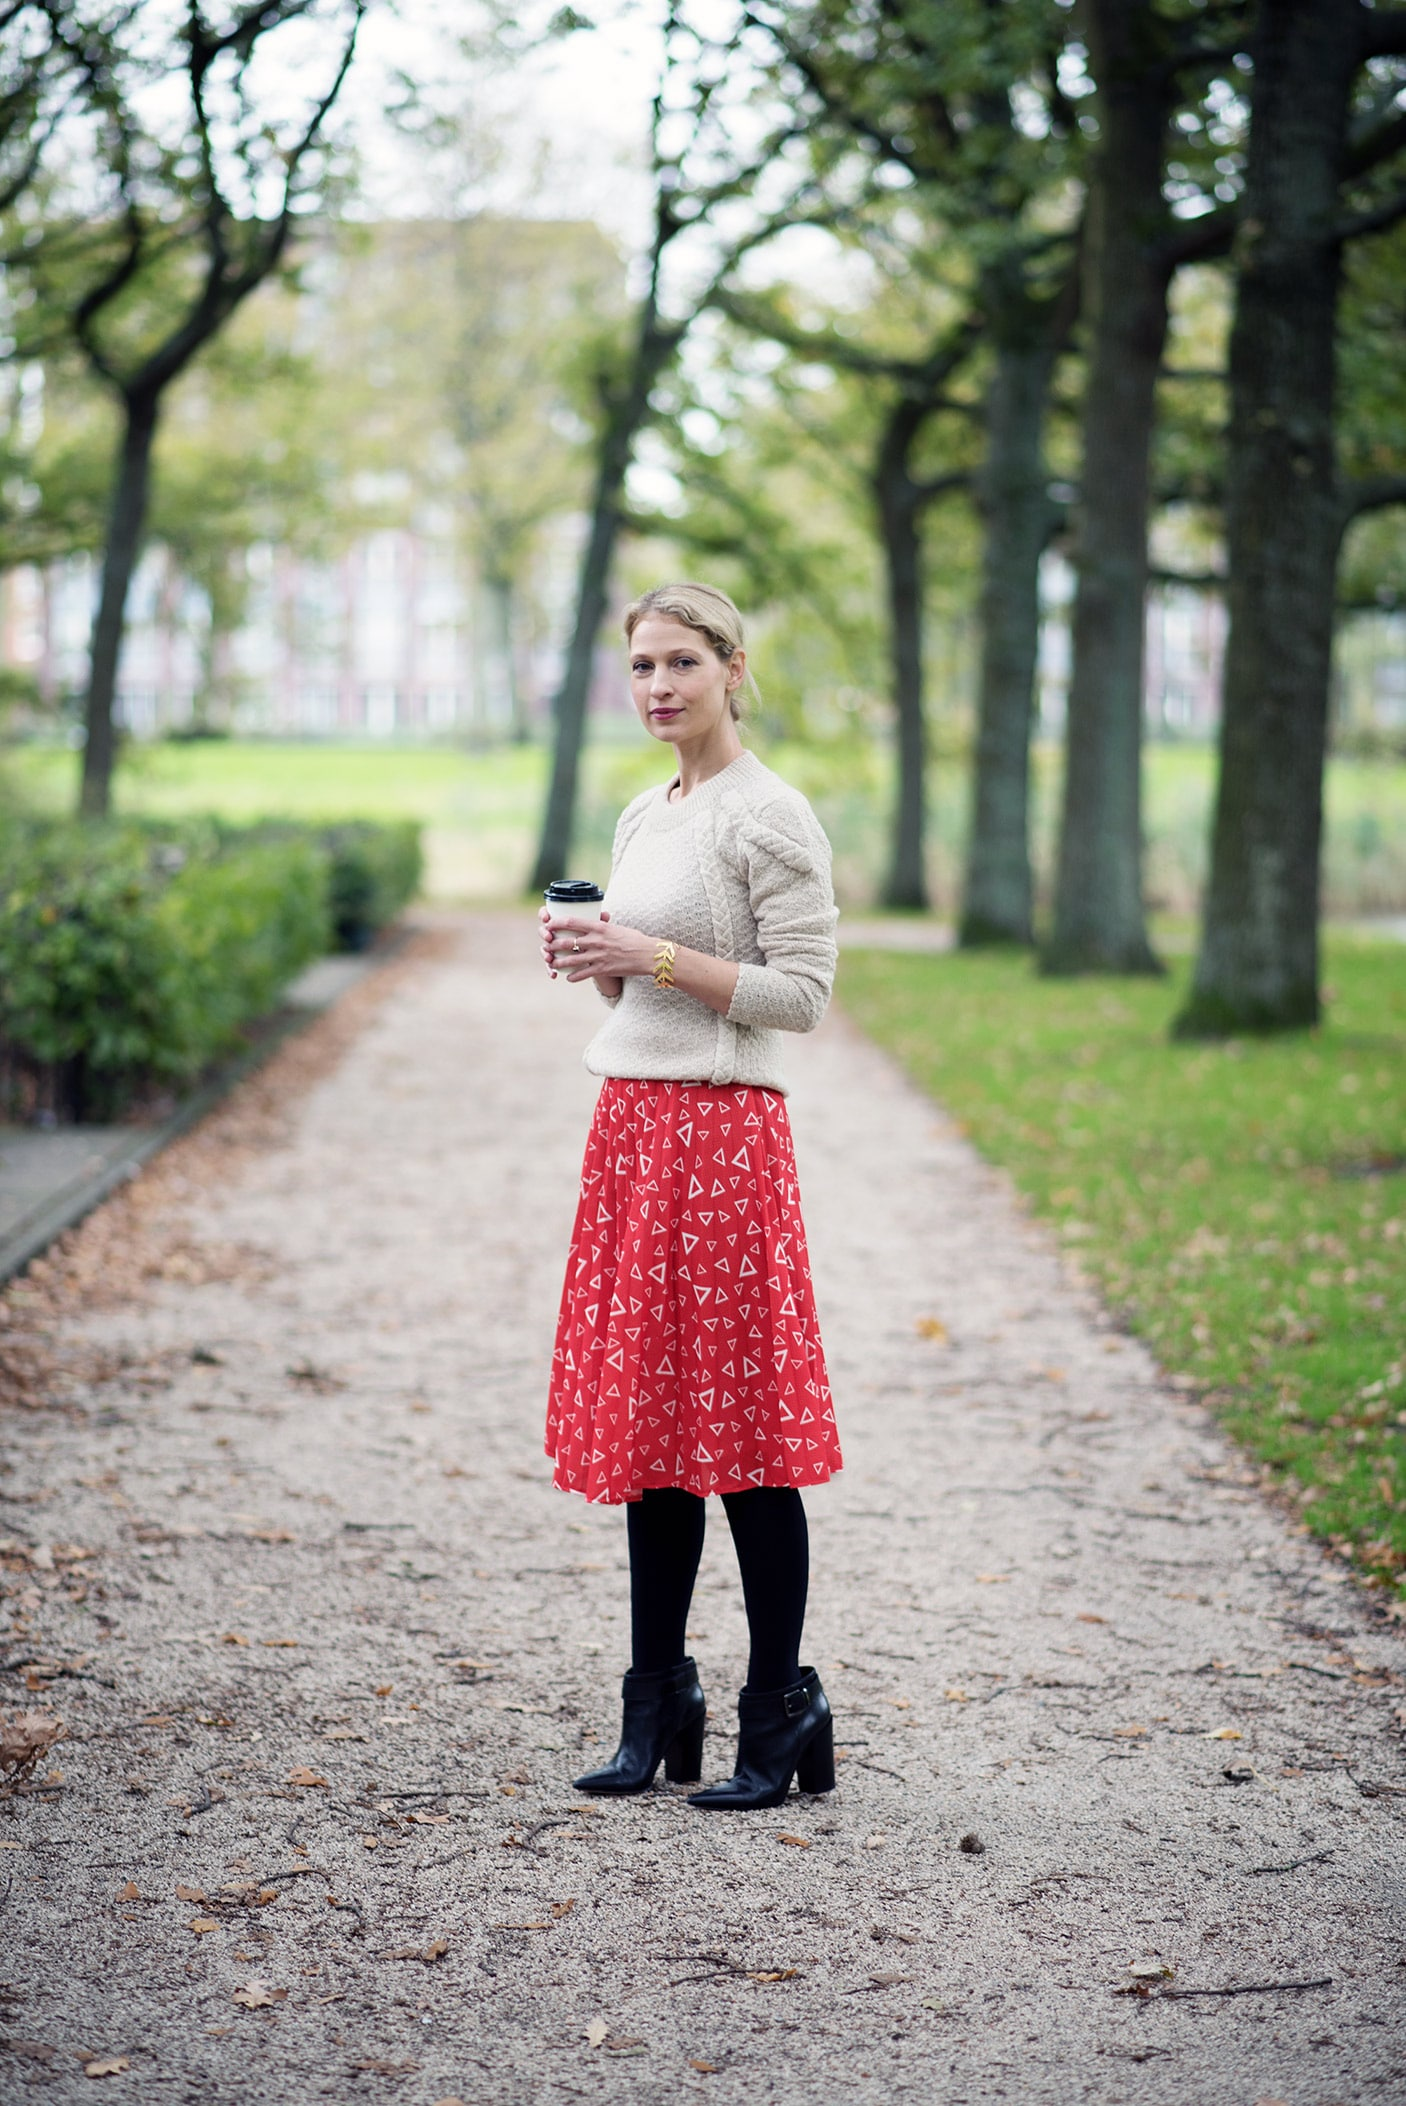 5 ways to wear vintage without looking like a period movie actress